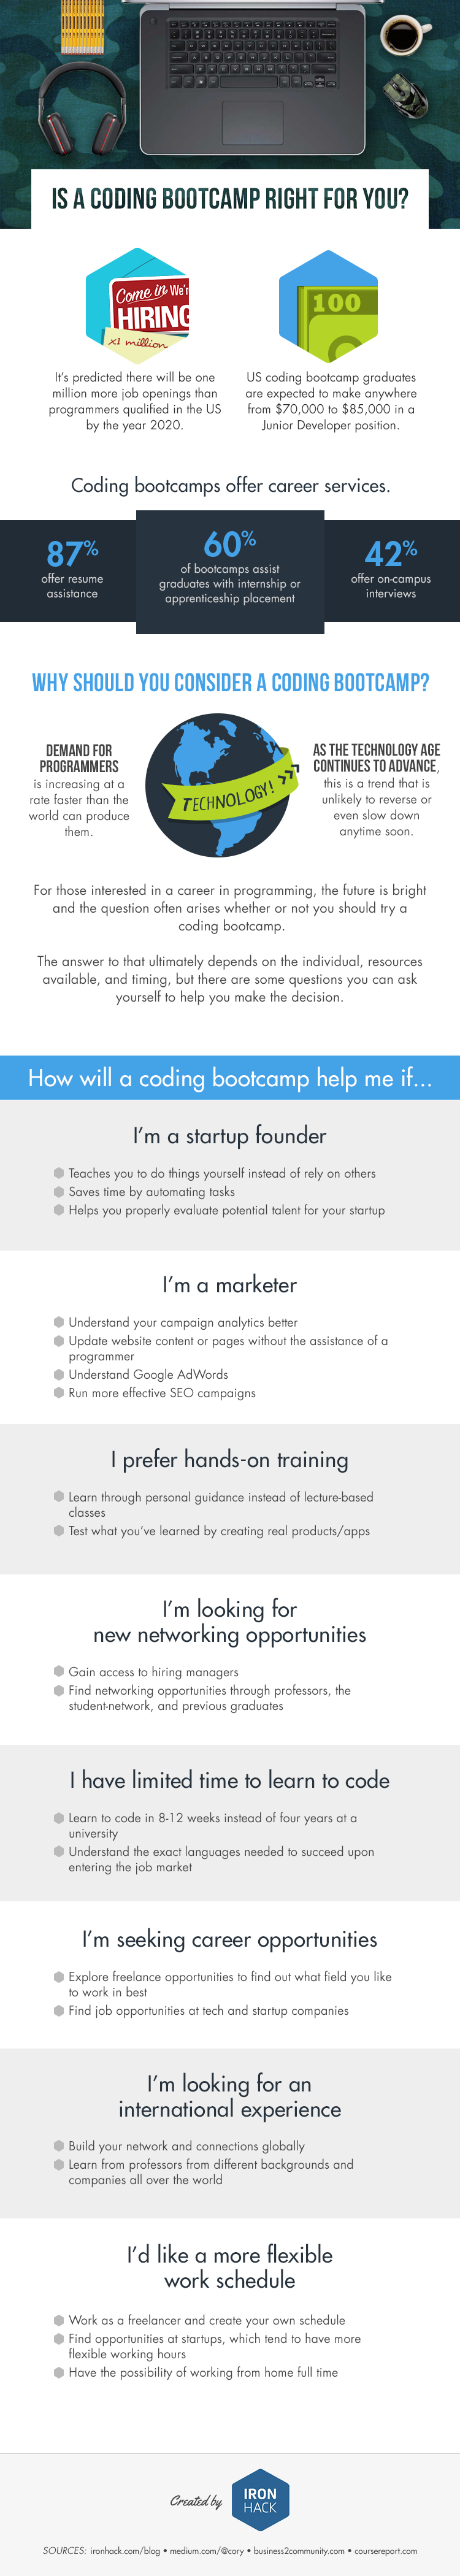 IS A CODING BOOTCAMP RIGHT FOR YOU? (INFOGRAPHIC)